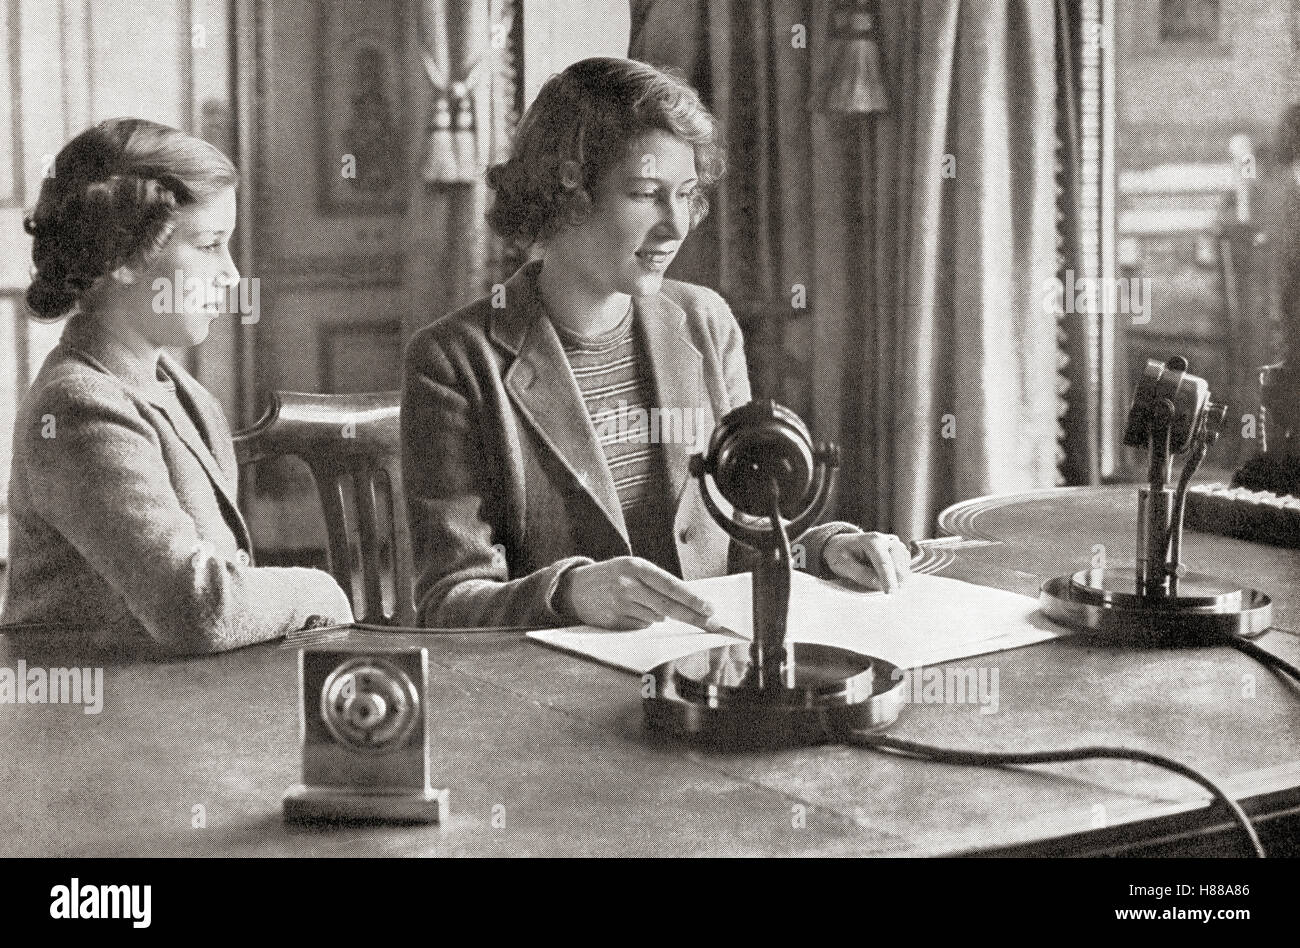 Princess Margaret, left, and Princess Elizabeth, future Queen Elizabeth II, right, broadcasting to the children - Stock Image